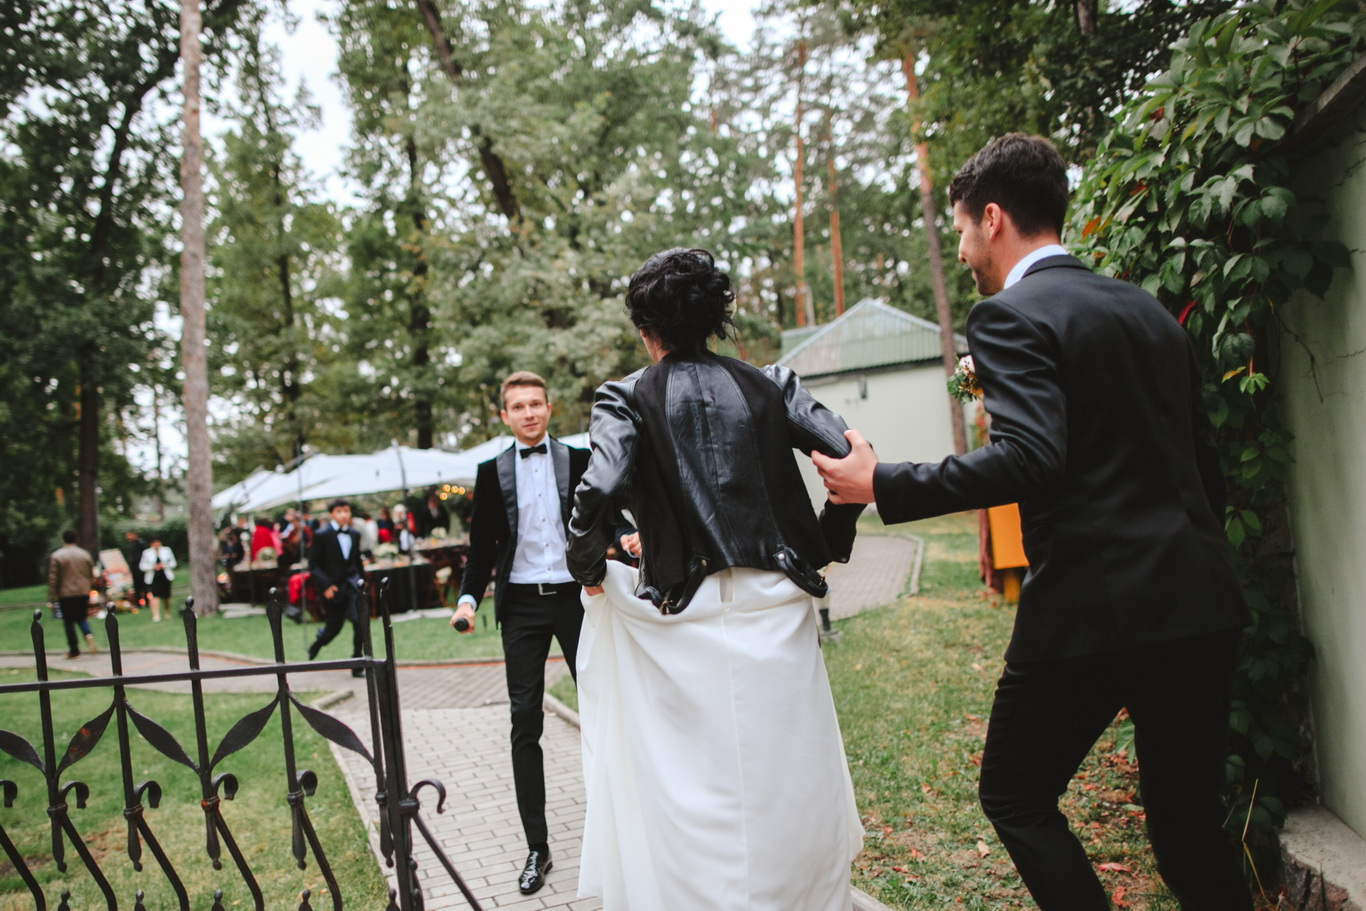 Apple-Pie-Weddings-Jane-Nikita-Kyiv-Ukraine-42